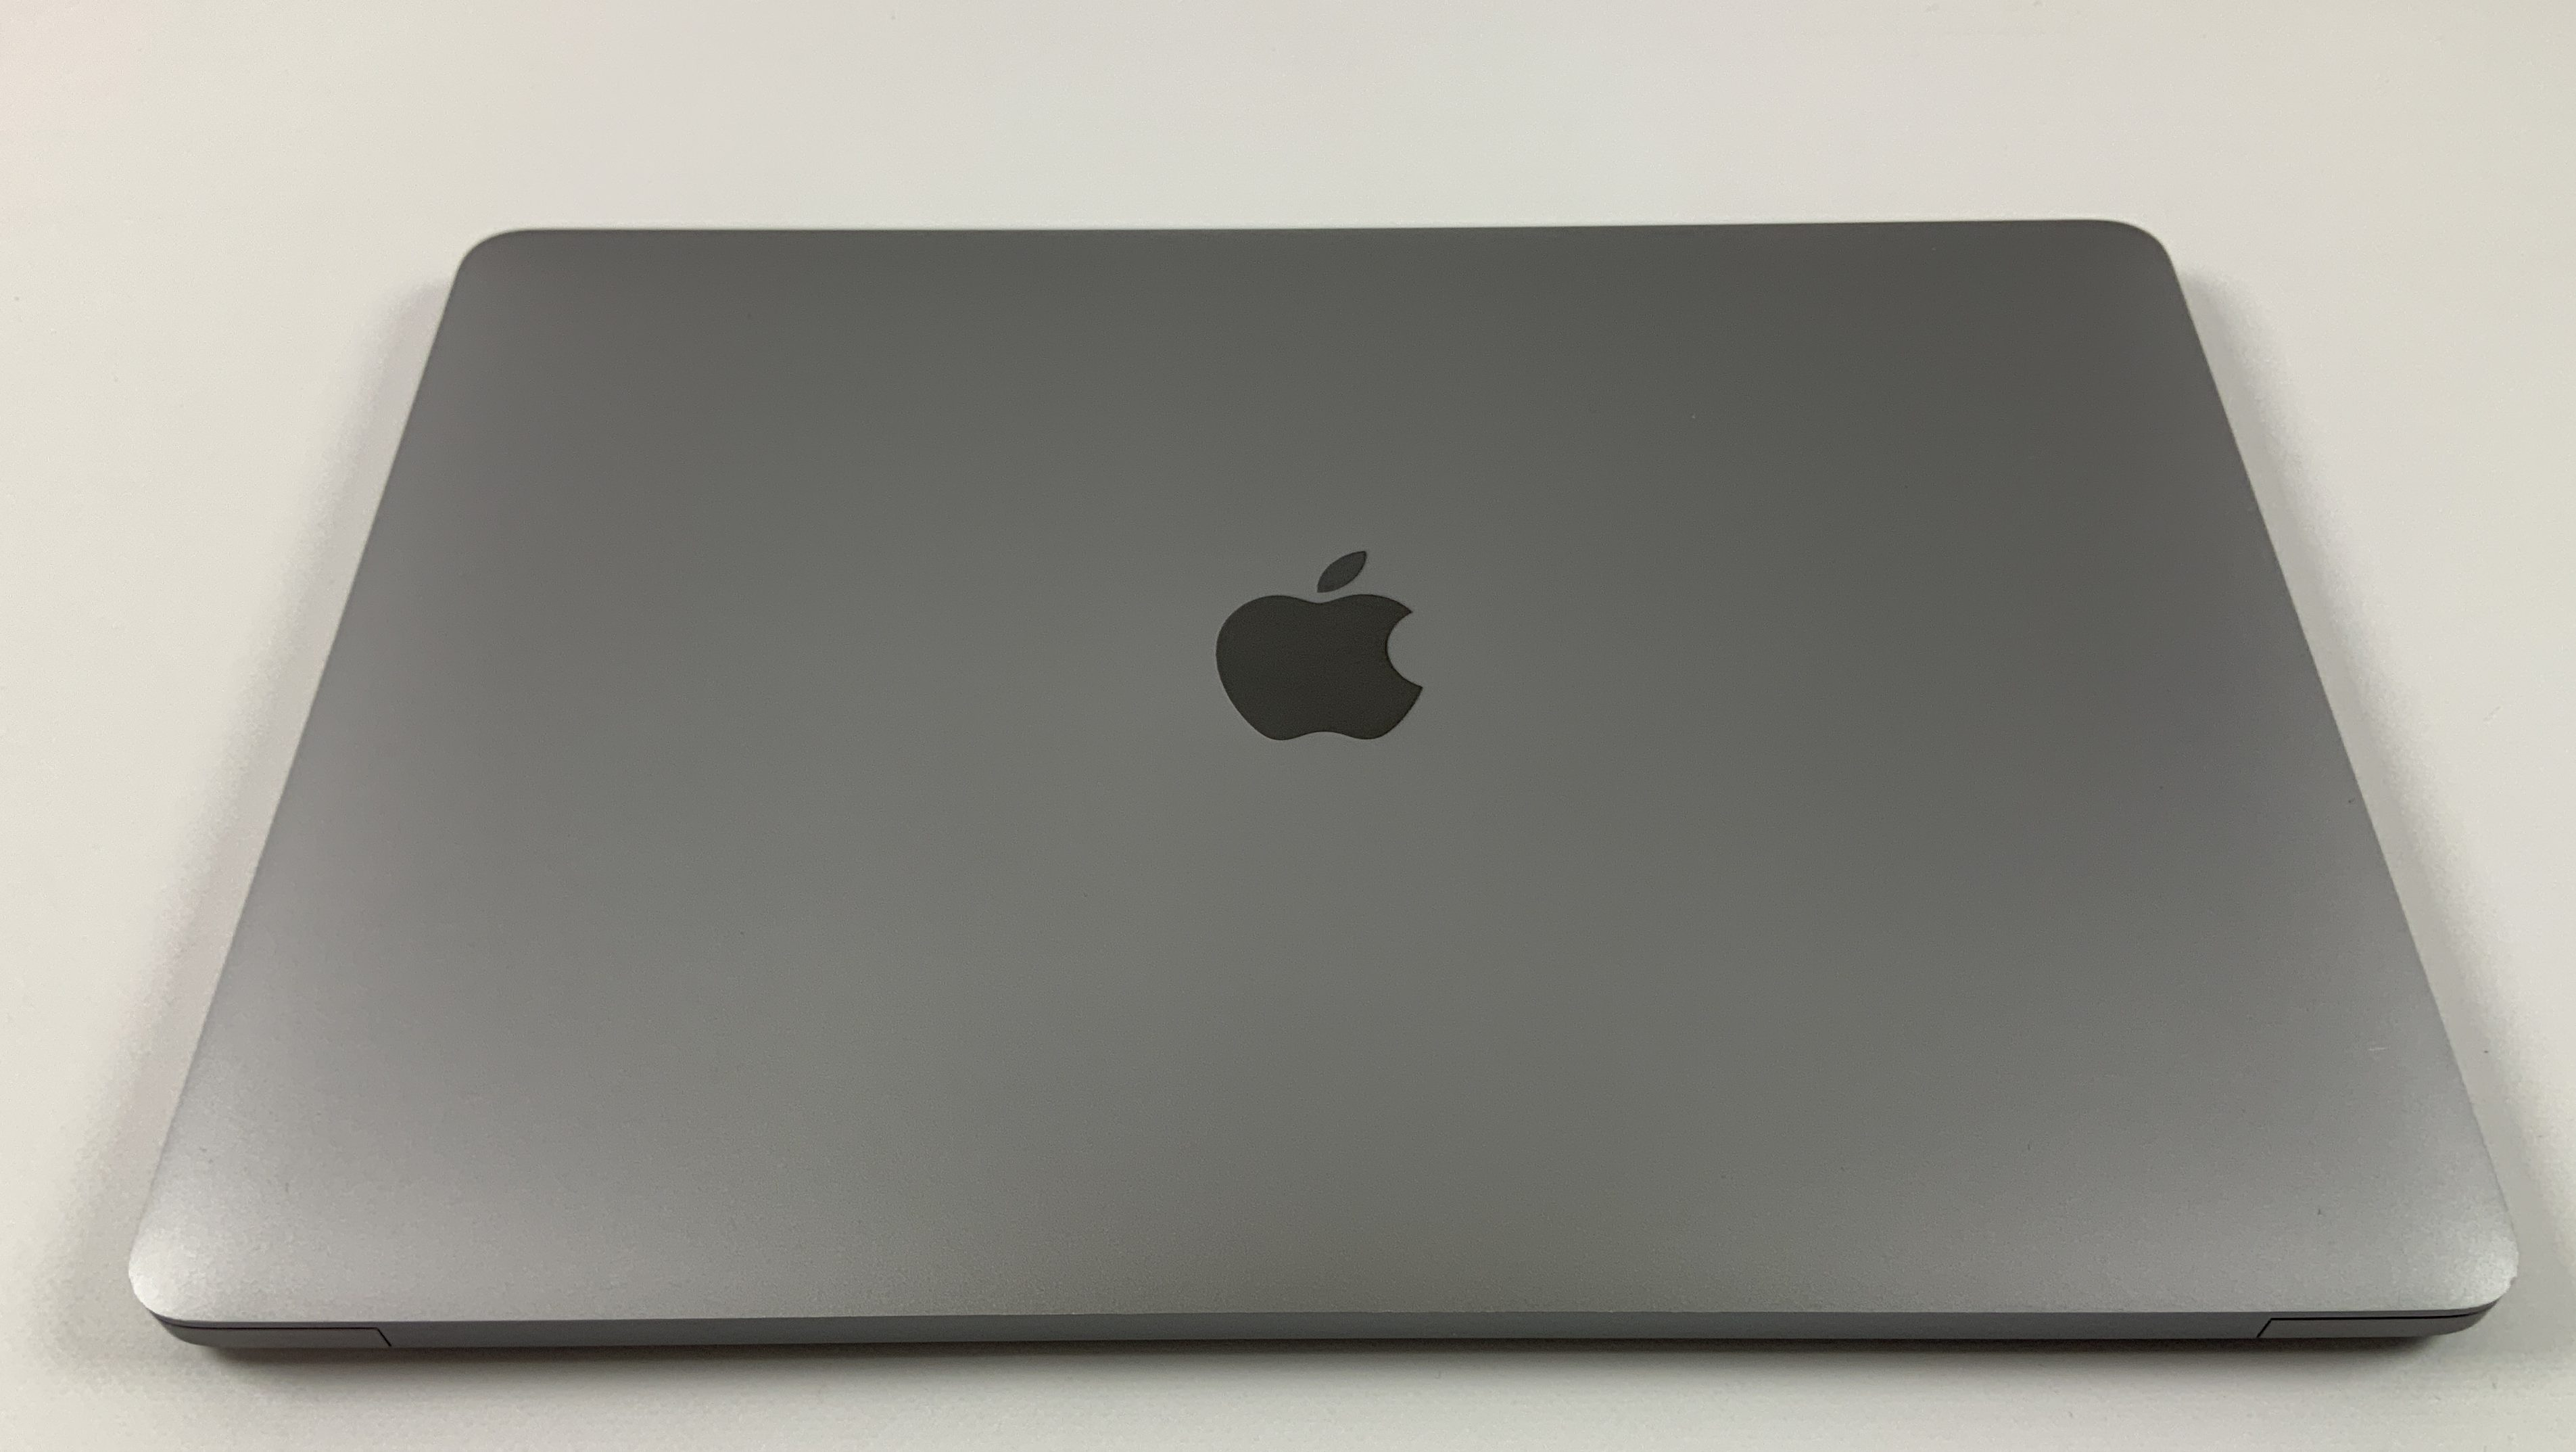 "MacBook Pro 13"" 4TBT Late 2016 (Intel Core i5 2.9 GHz 8 GB RAM 512 GB SSD), Space Gray, Intel Core i5 2.9 GHz, 8 GB RAM, 512 GB SSD, image 5"